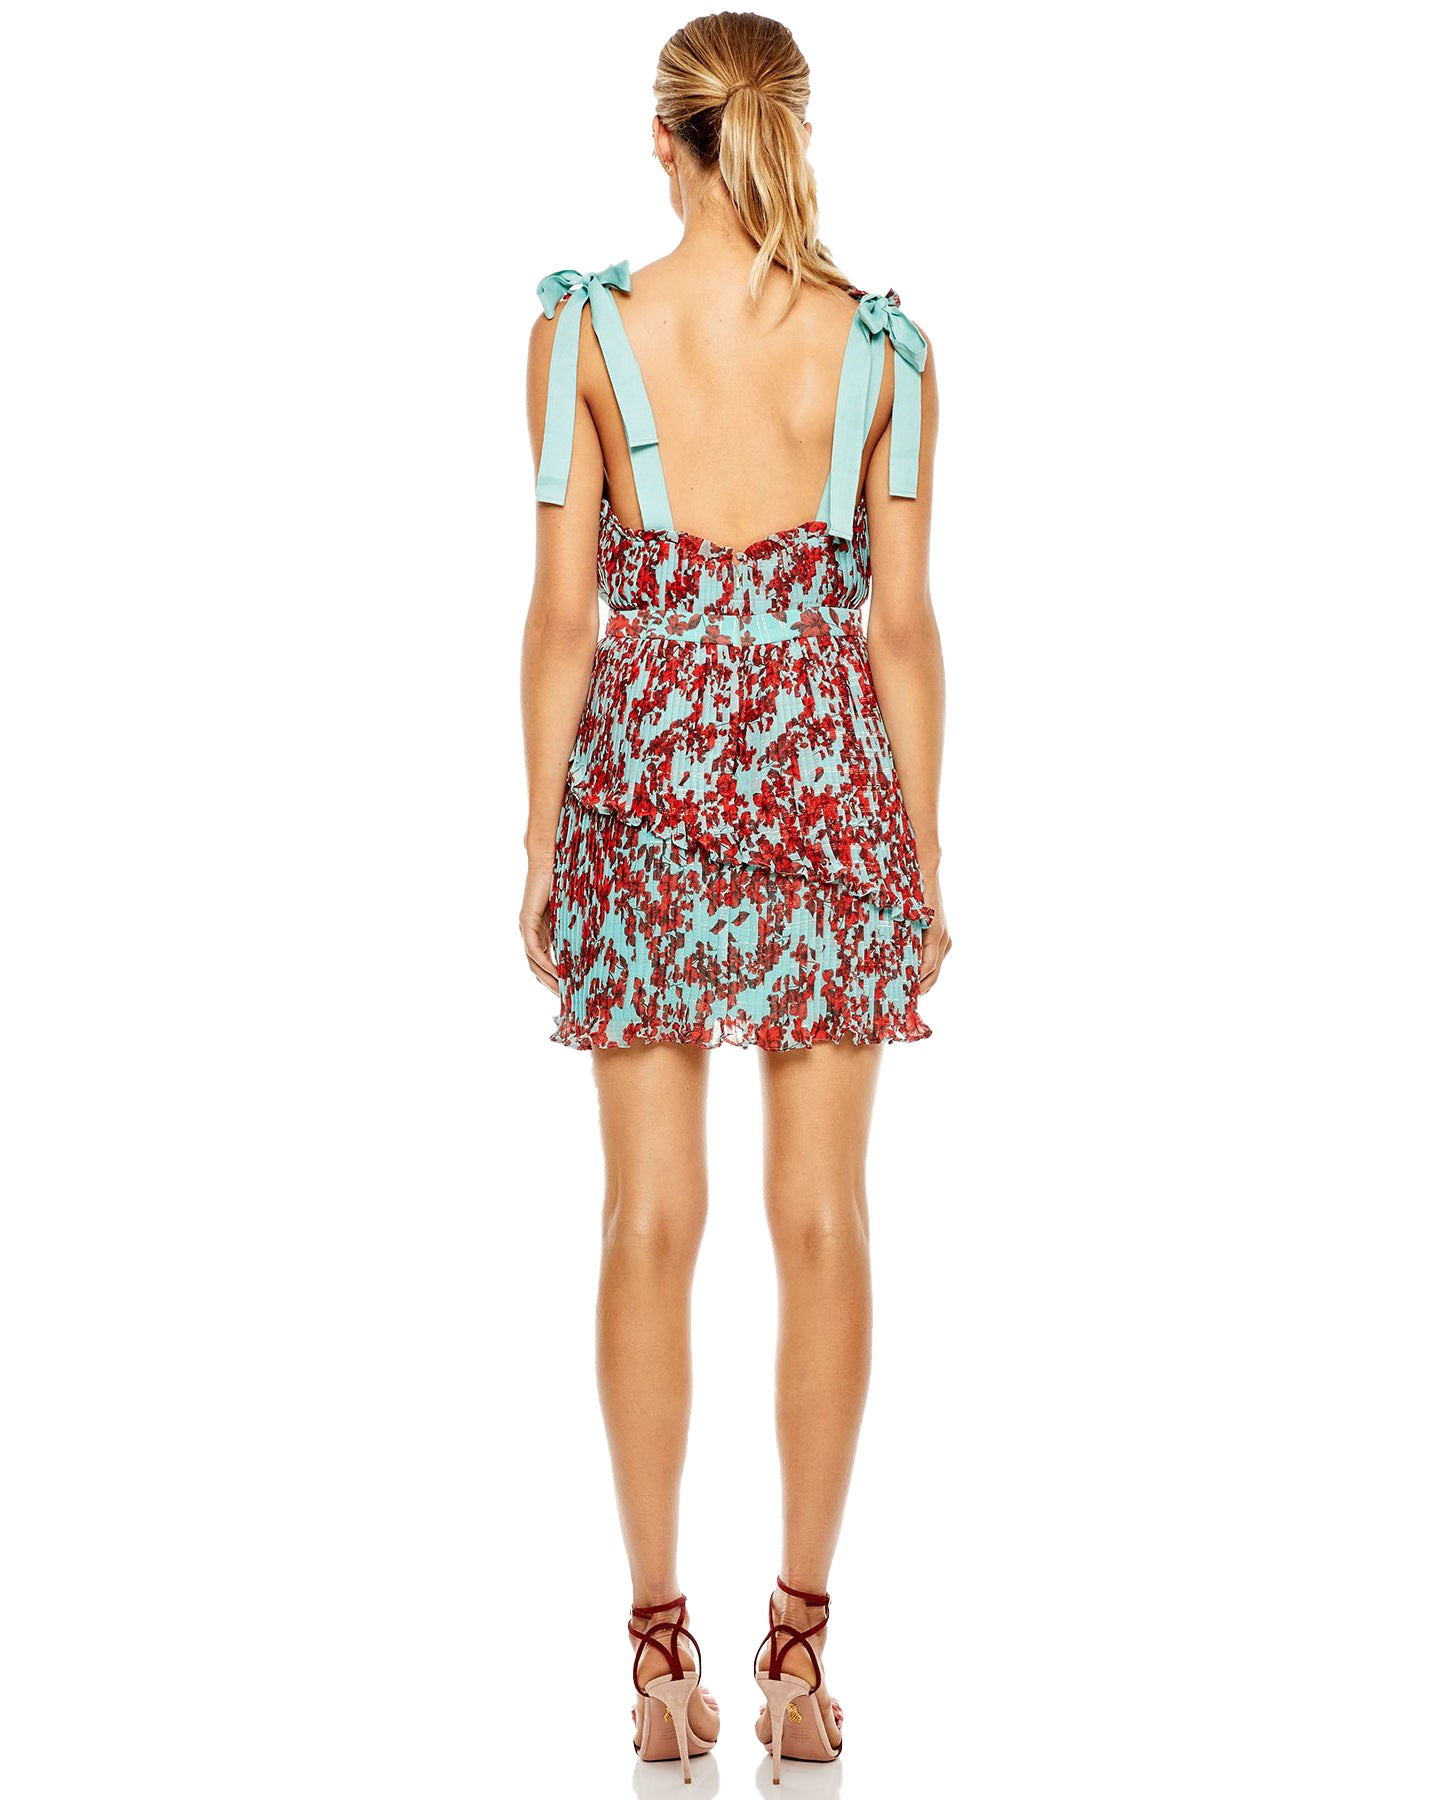 TALULAH SUPERBLOOM MINI DRESS WITH TIE STRAPS